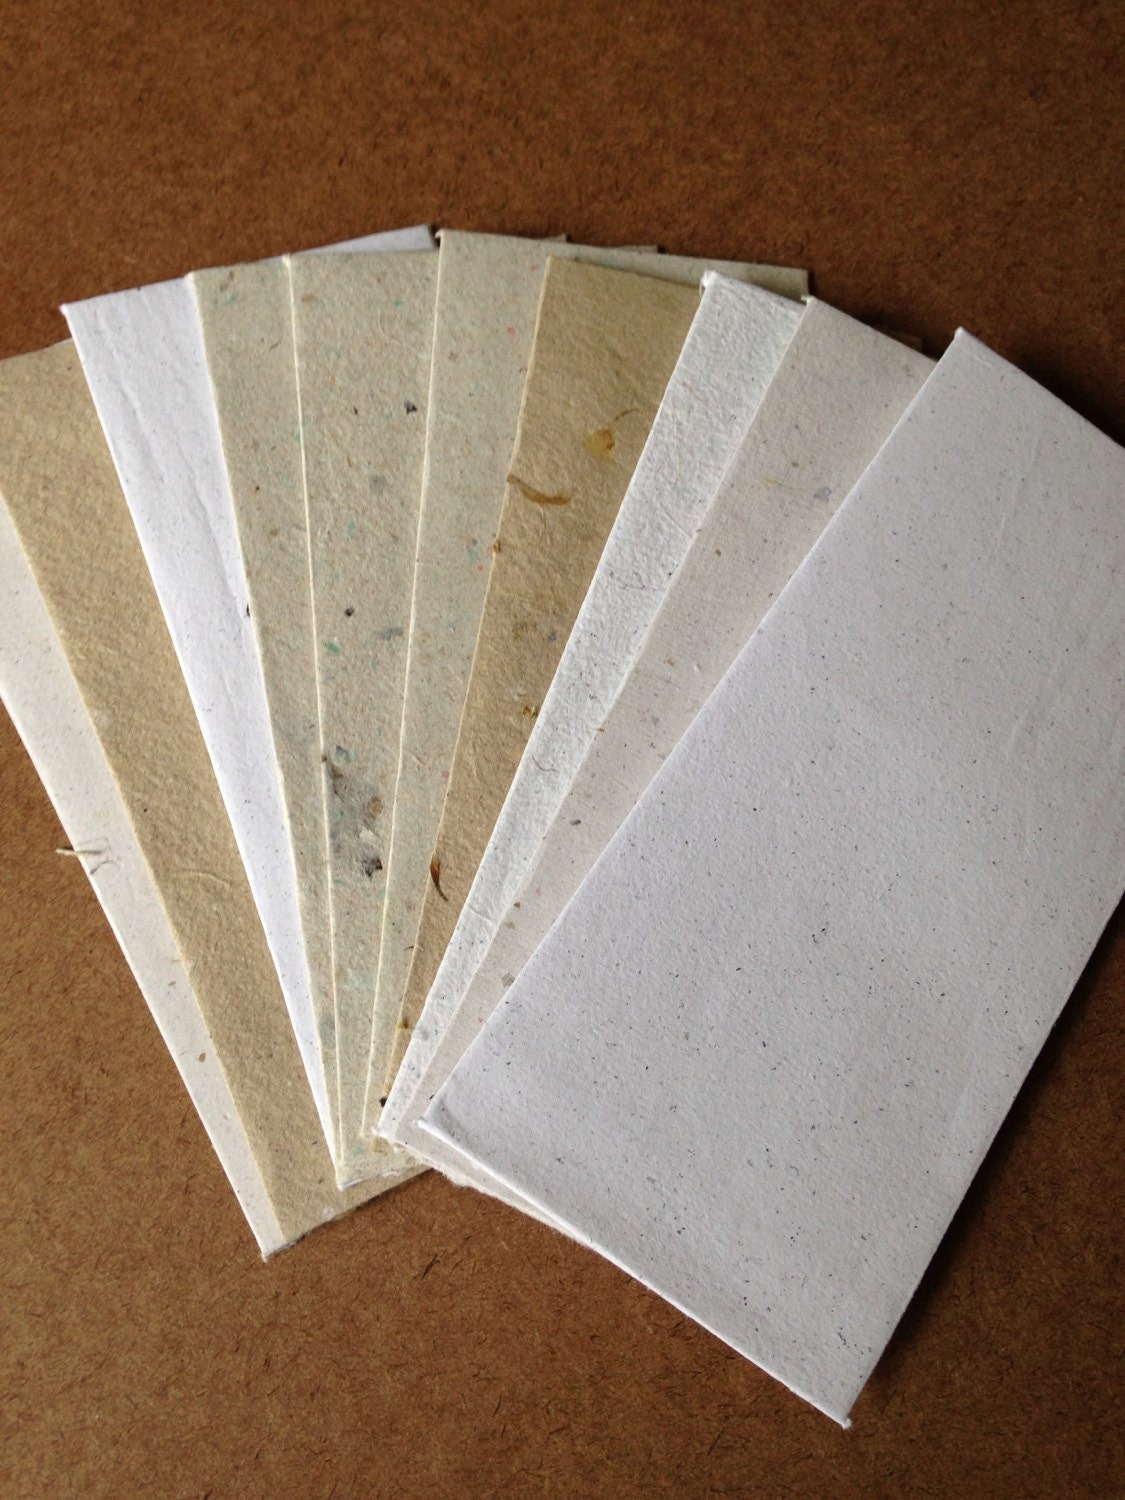 10 envelopes 9.25x4 inch business sized envelopes, letter envelopes, homemade paper, handmade envelopes, eco friendly paper recycled paper